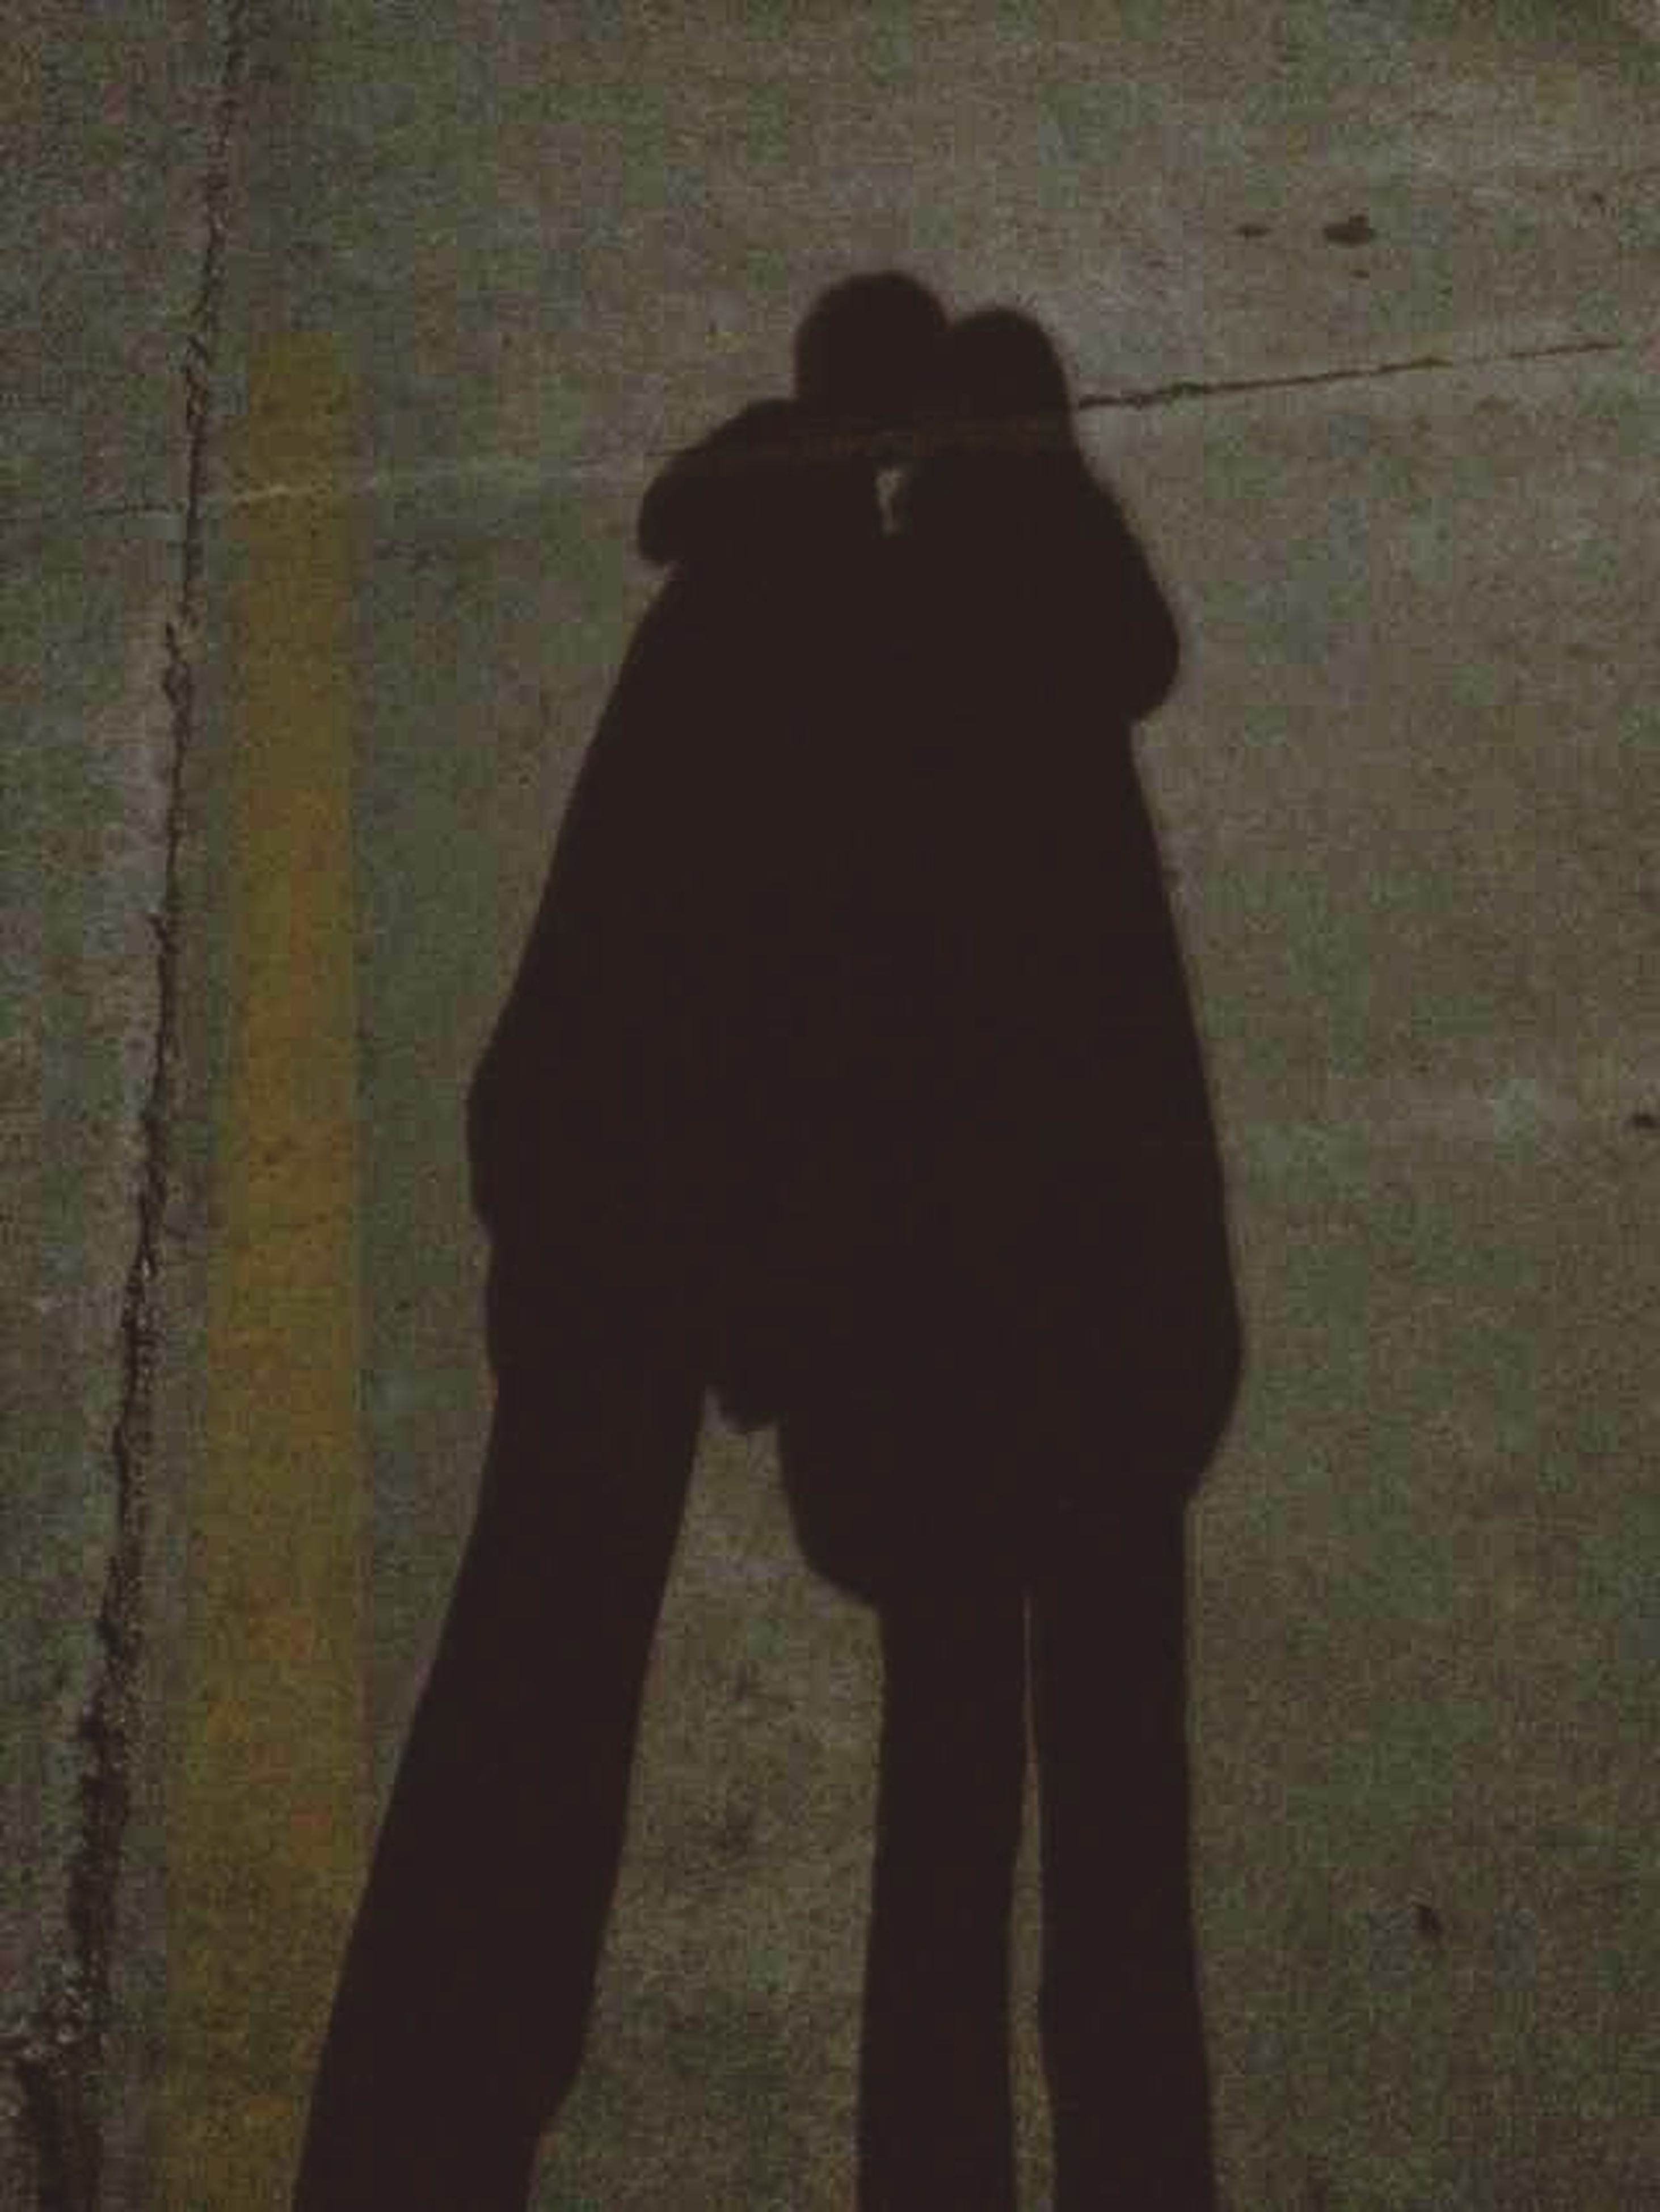 silhouette, shadow, standing, lifestyles, three quarter length, men, rear view, focus on shadow, leisure activity, sunlight, indoors, outline, person, full length, night, dark, wall - building feature, side view